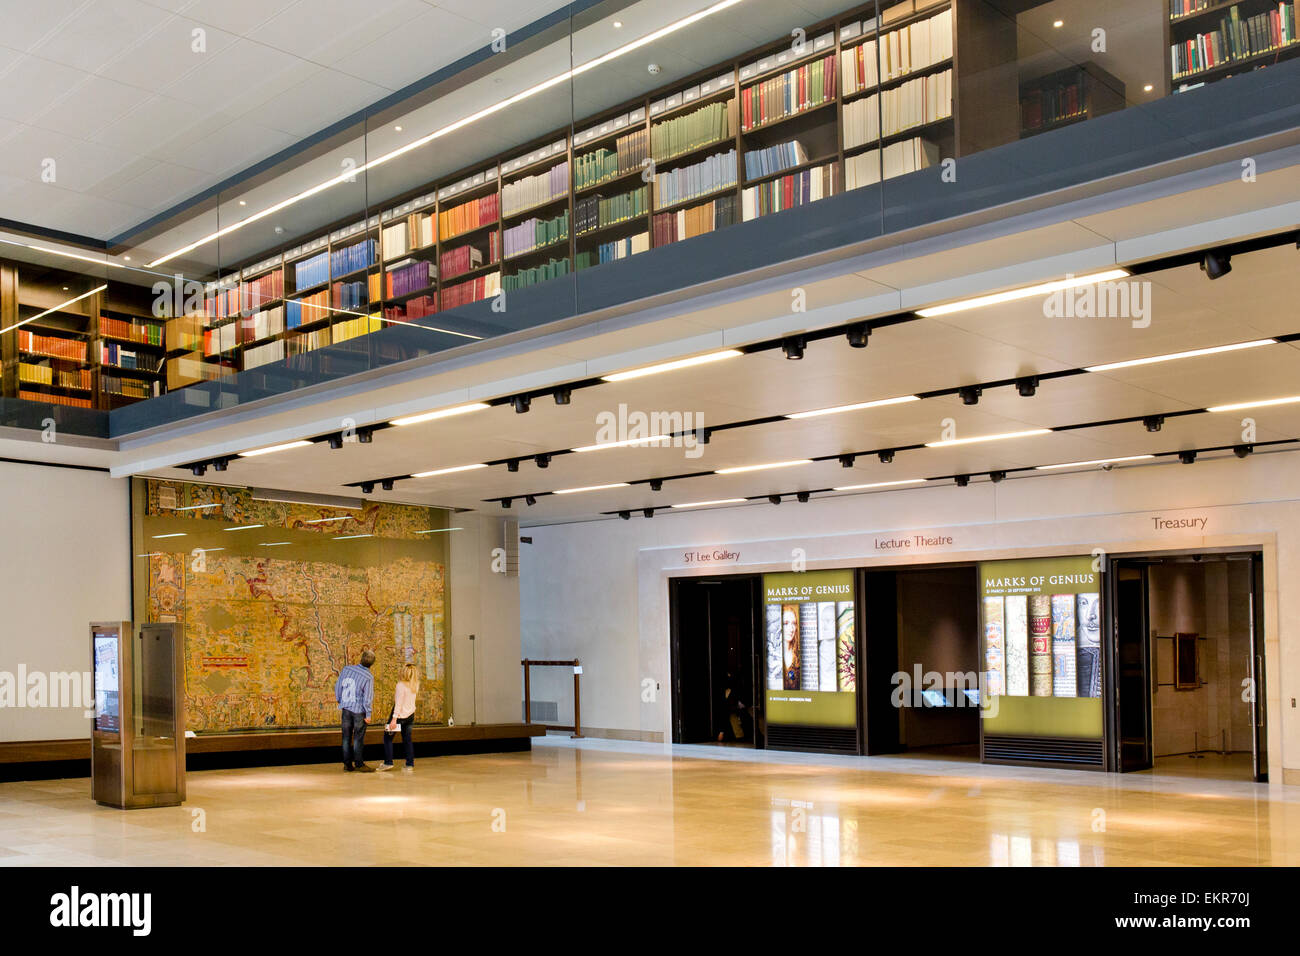 Bodleian Library Bodleian Libraries Stock Photos And Bodleian Libraries Stock